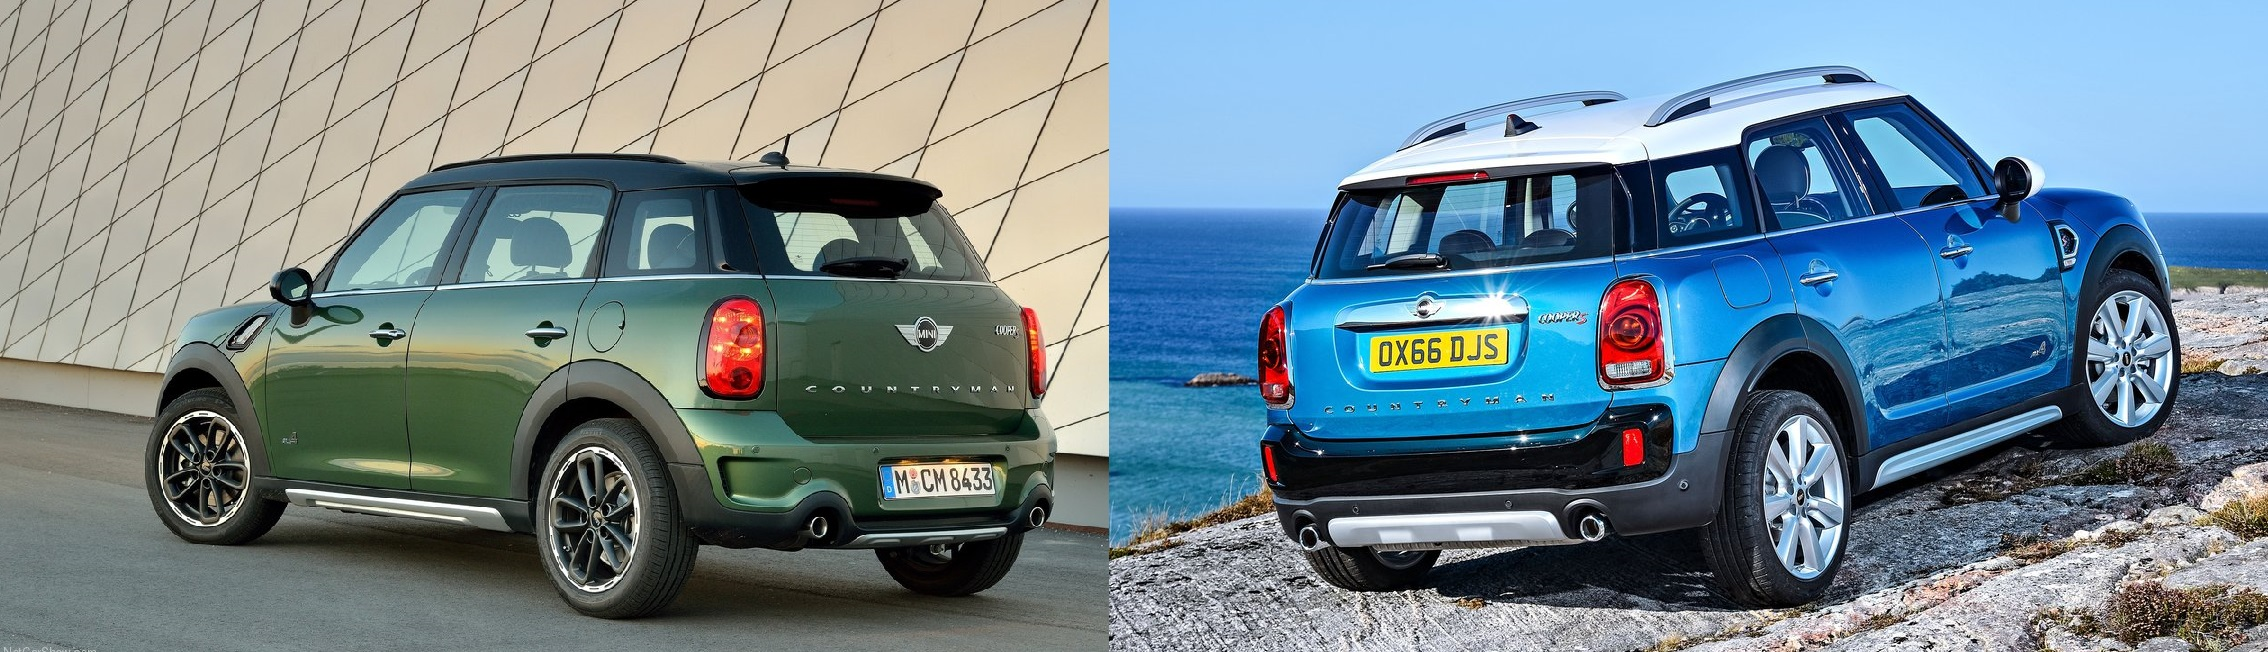 mini-countryman-rrx2